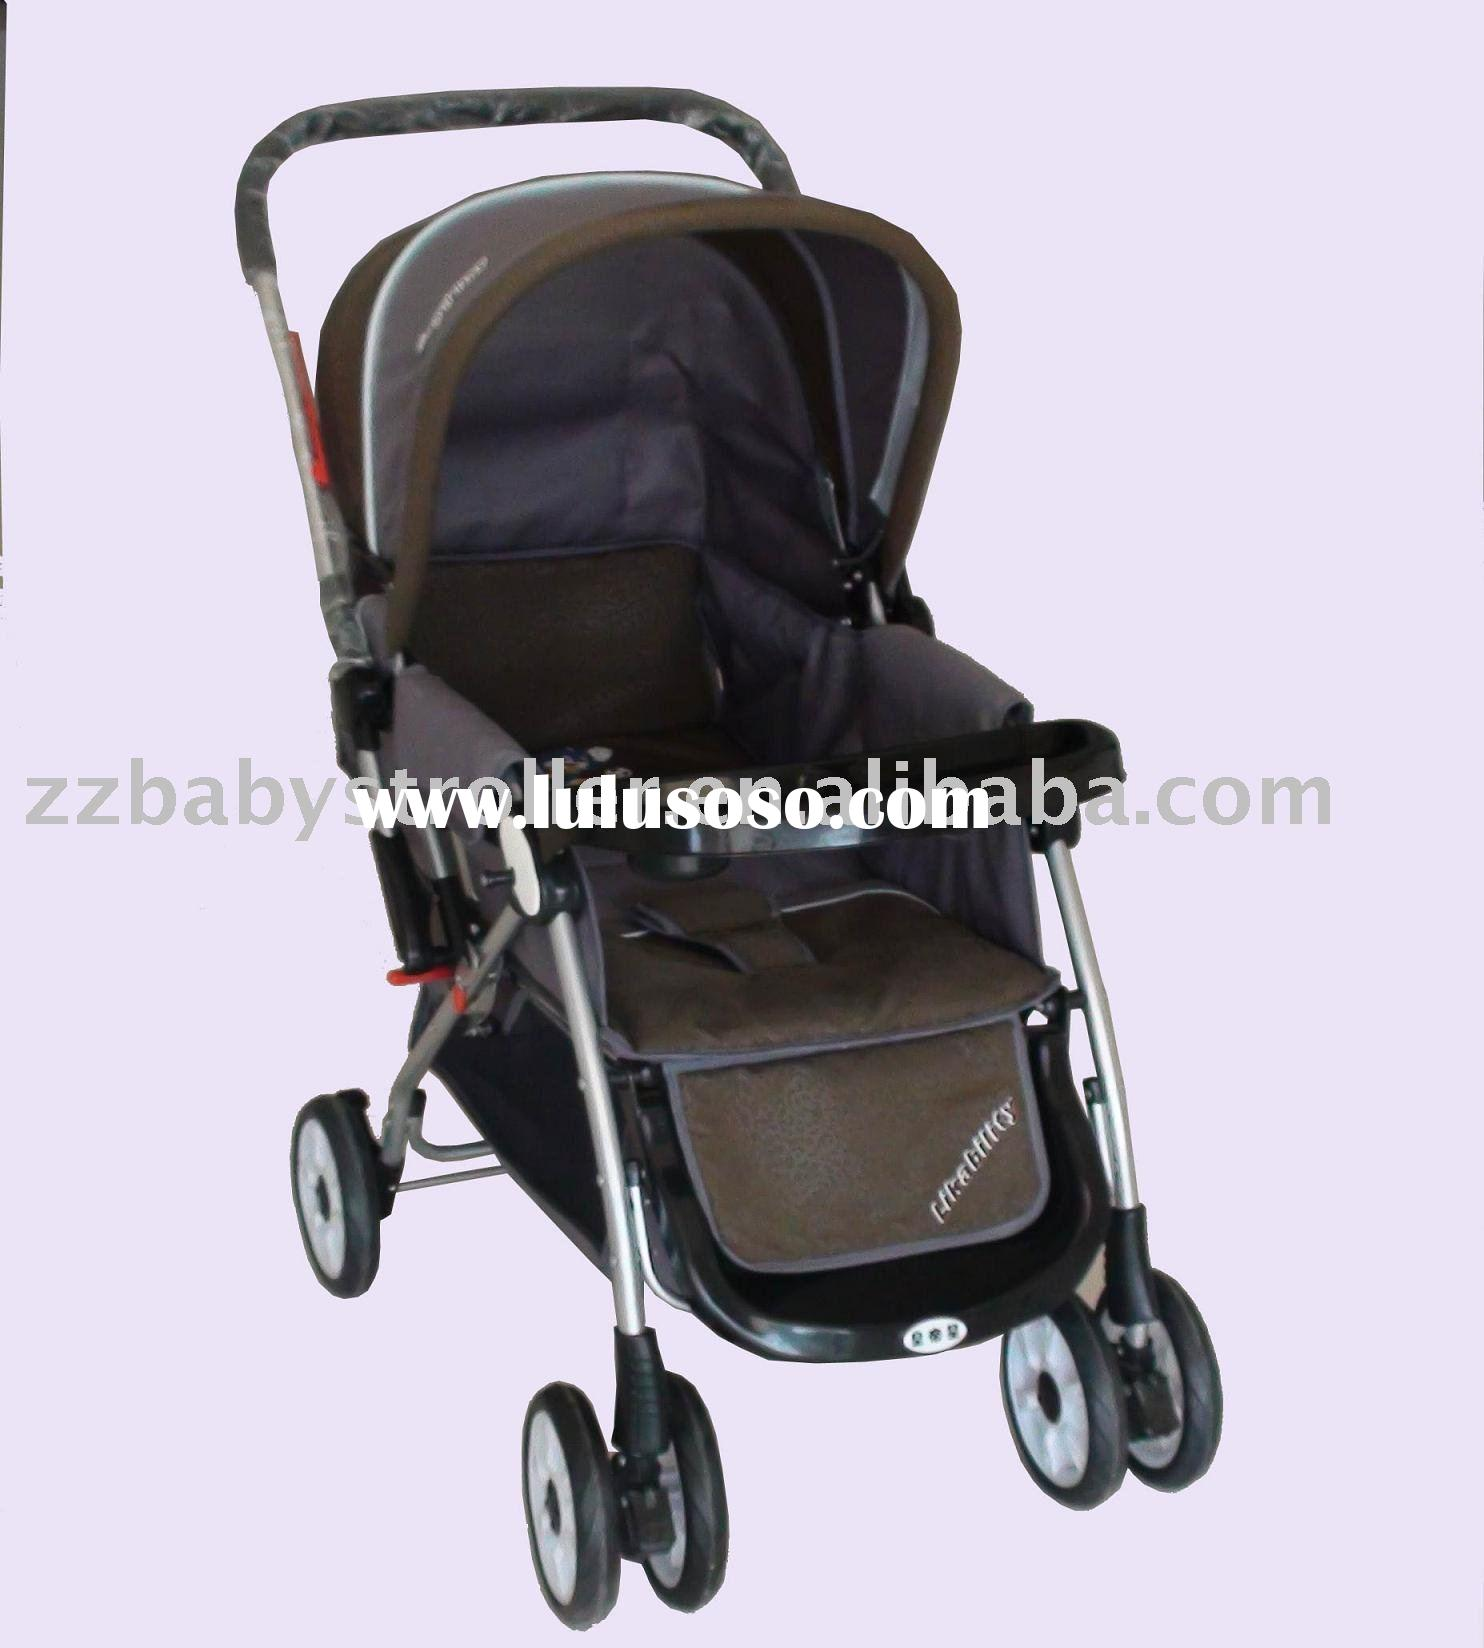 Peg Perego Stroller Replacement Spring : Orbit baby stroller in polyester fabric for sale price